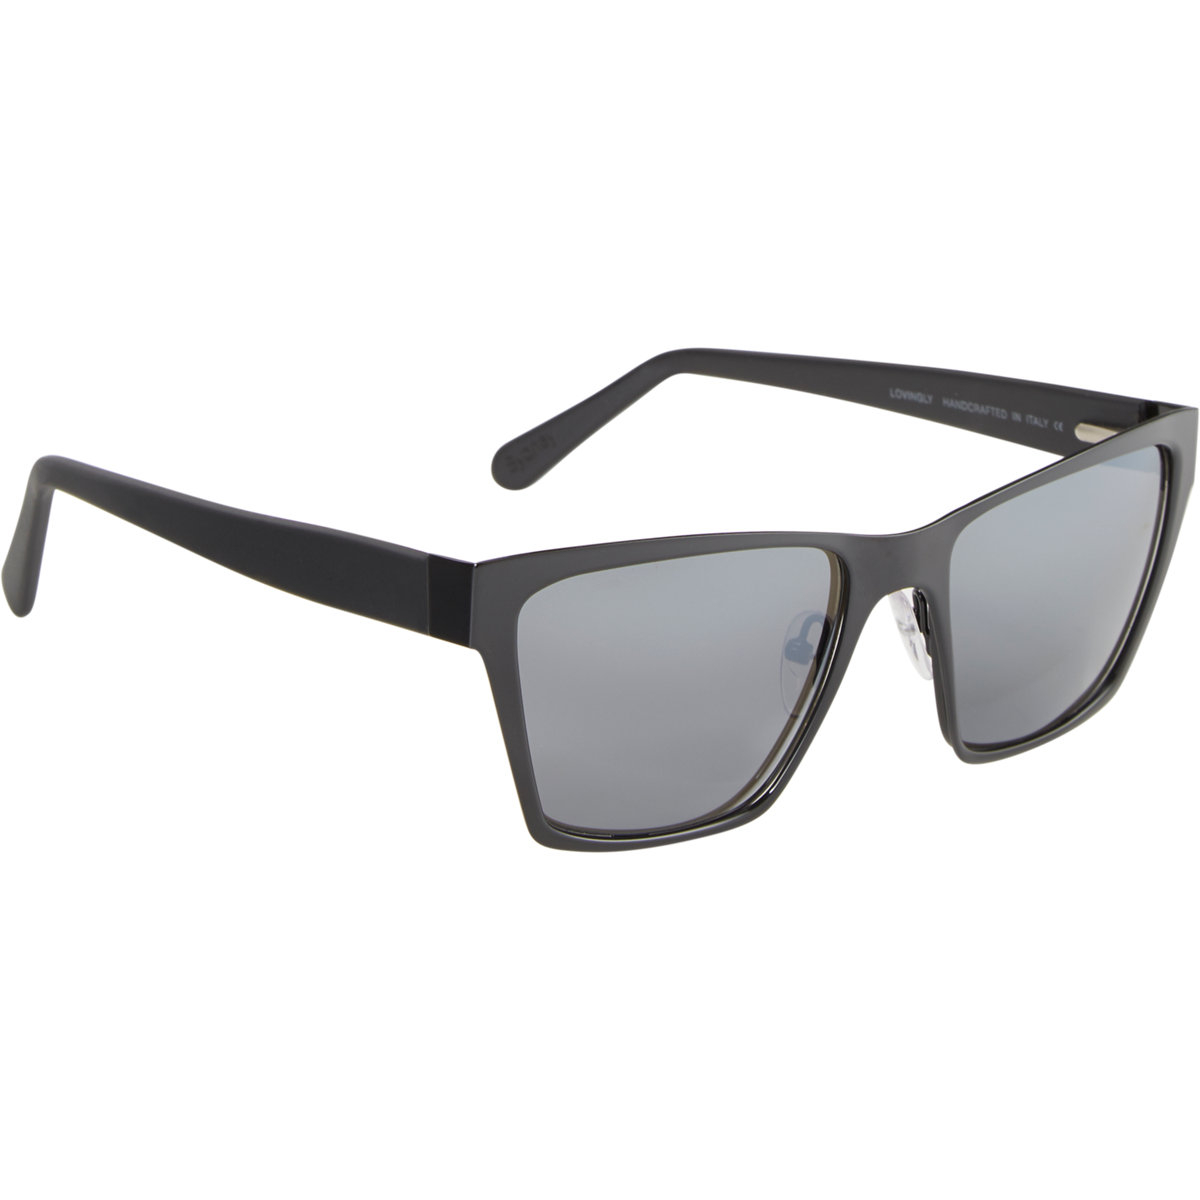 Prism Sydney Sunglasses  prism sydney sunglasses in black lyst